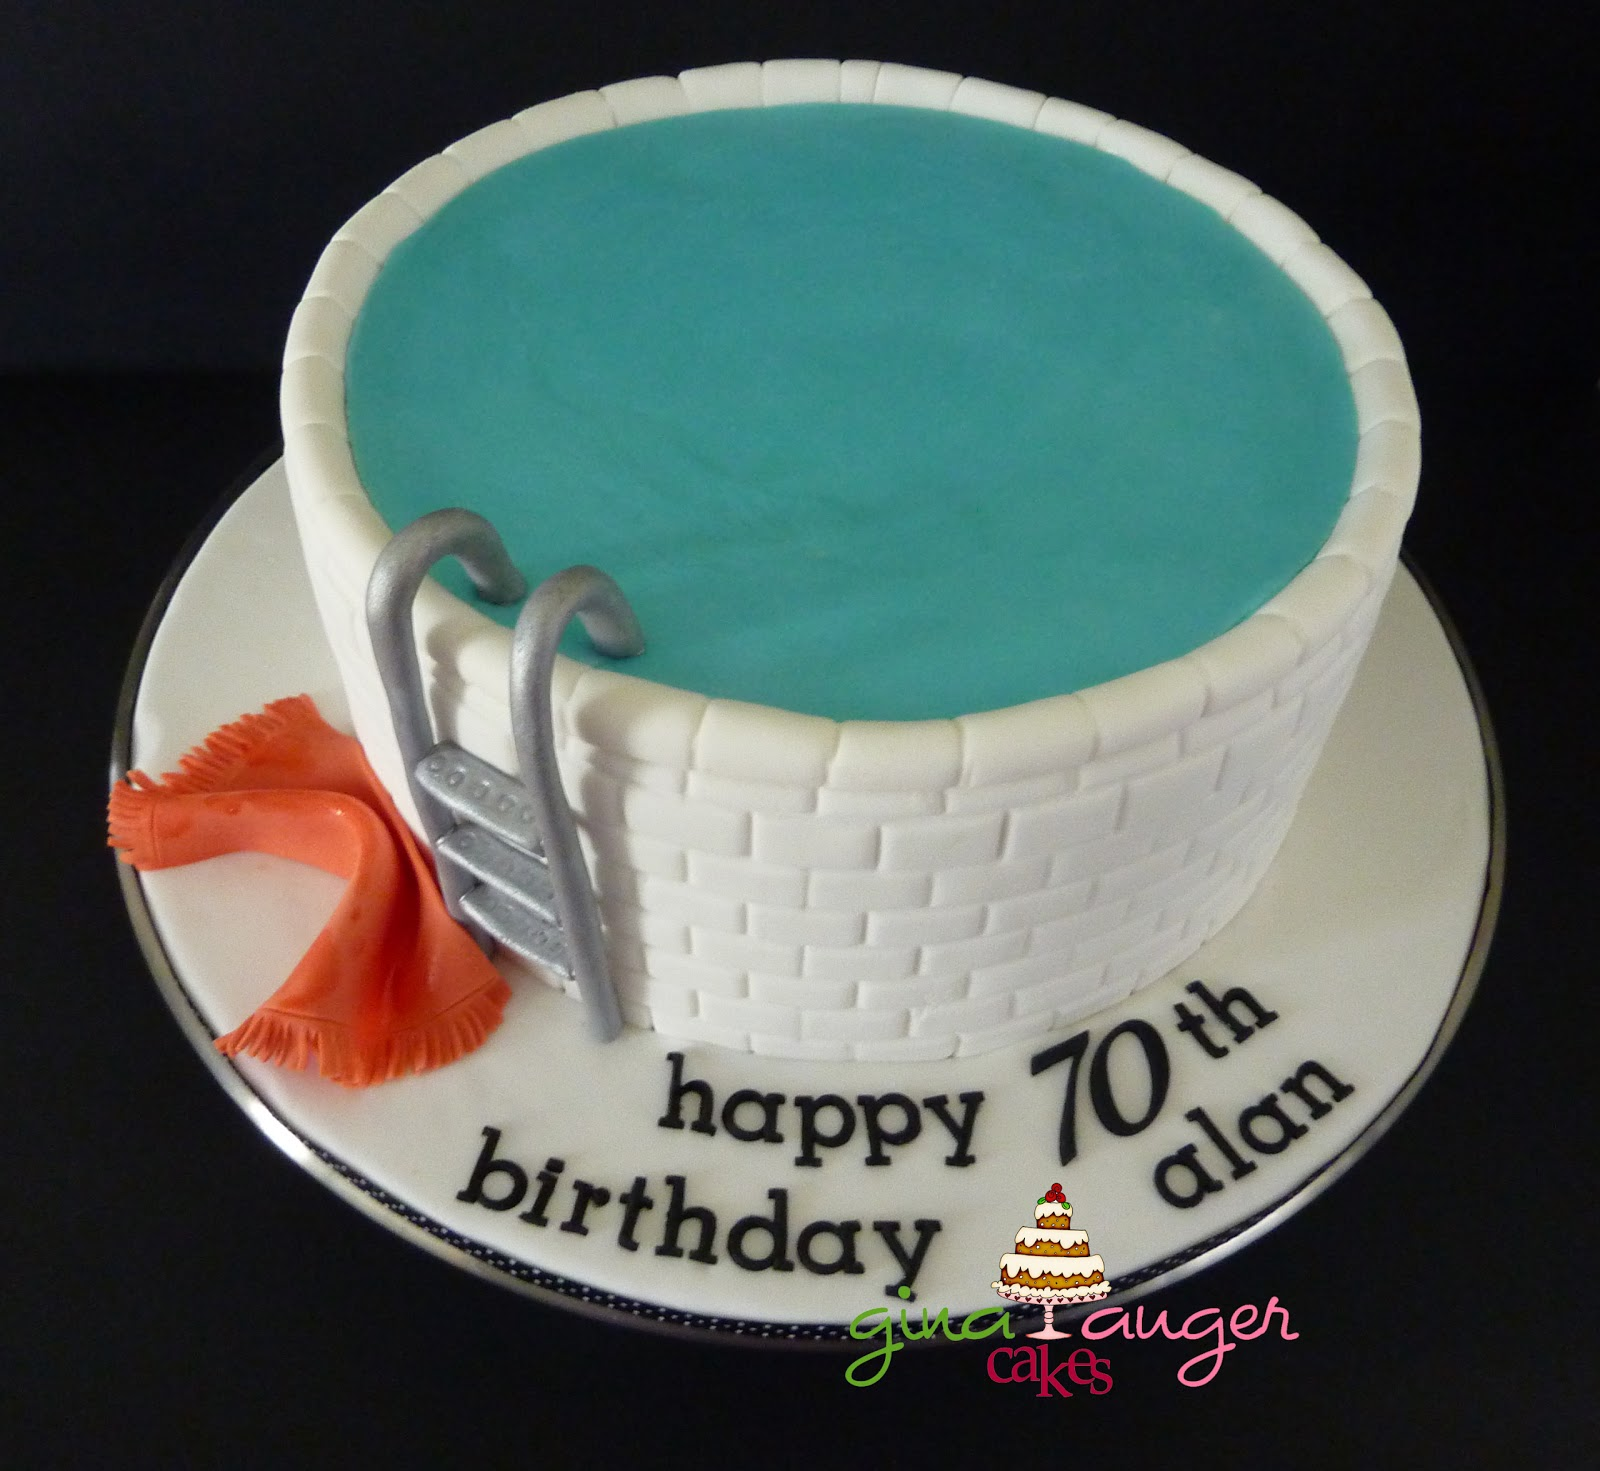 Top That!: Dive in! Alans 70th Birthday Cake